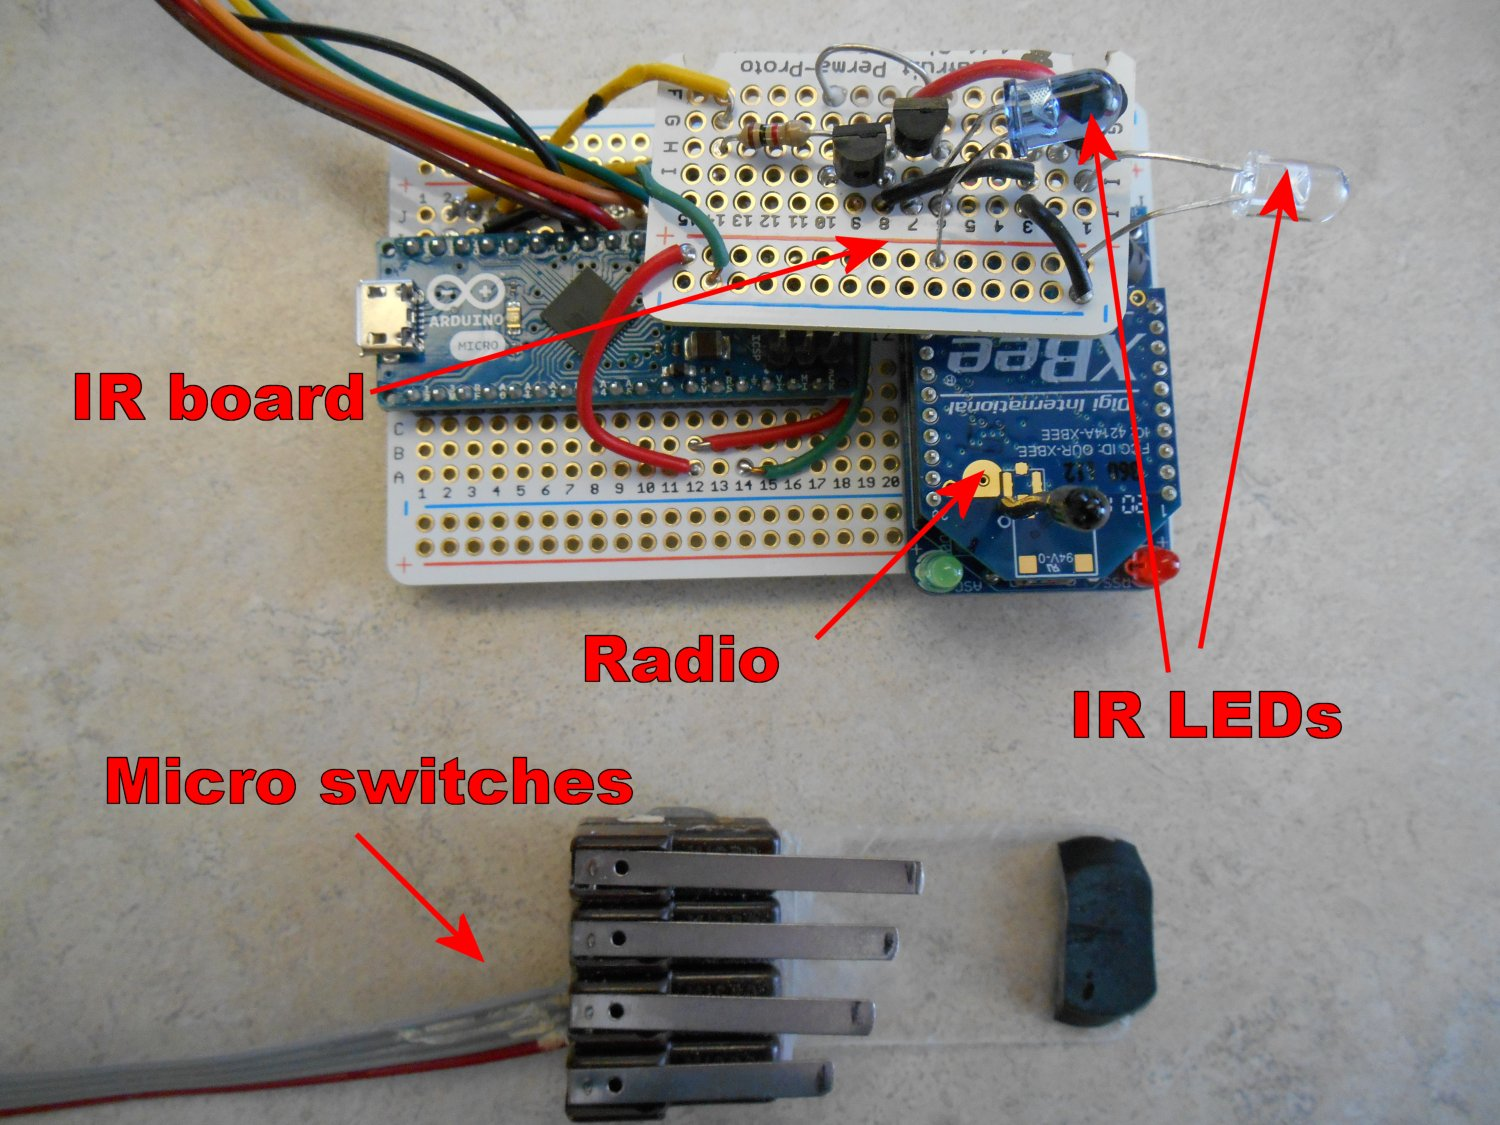 Transmitter with IR emitters and microswitches